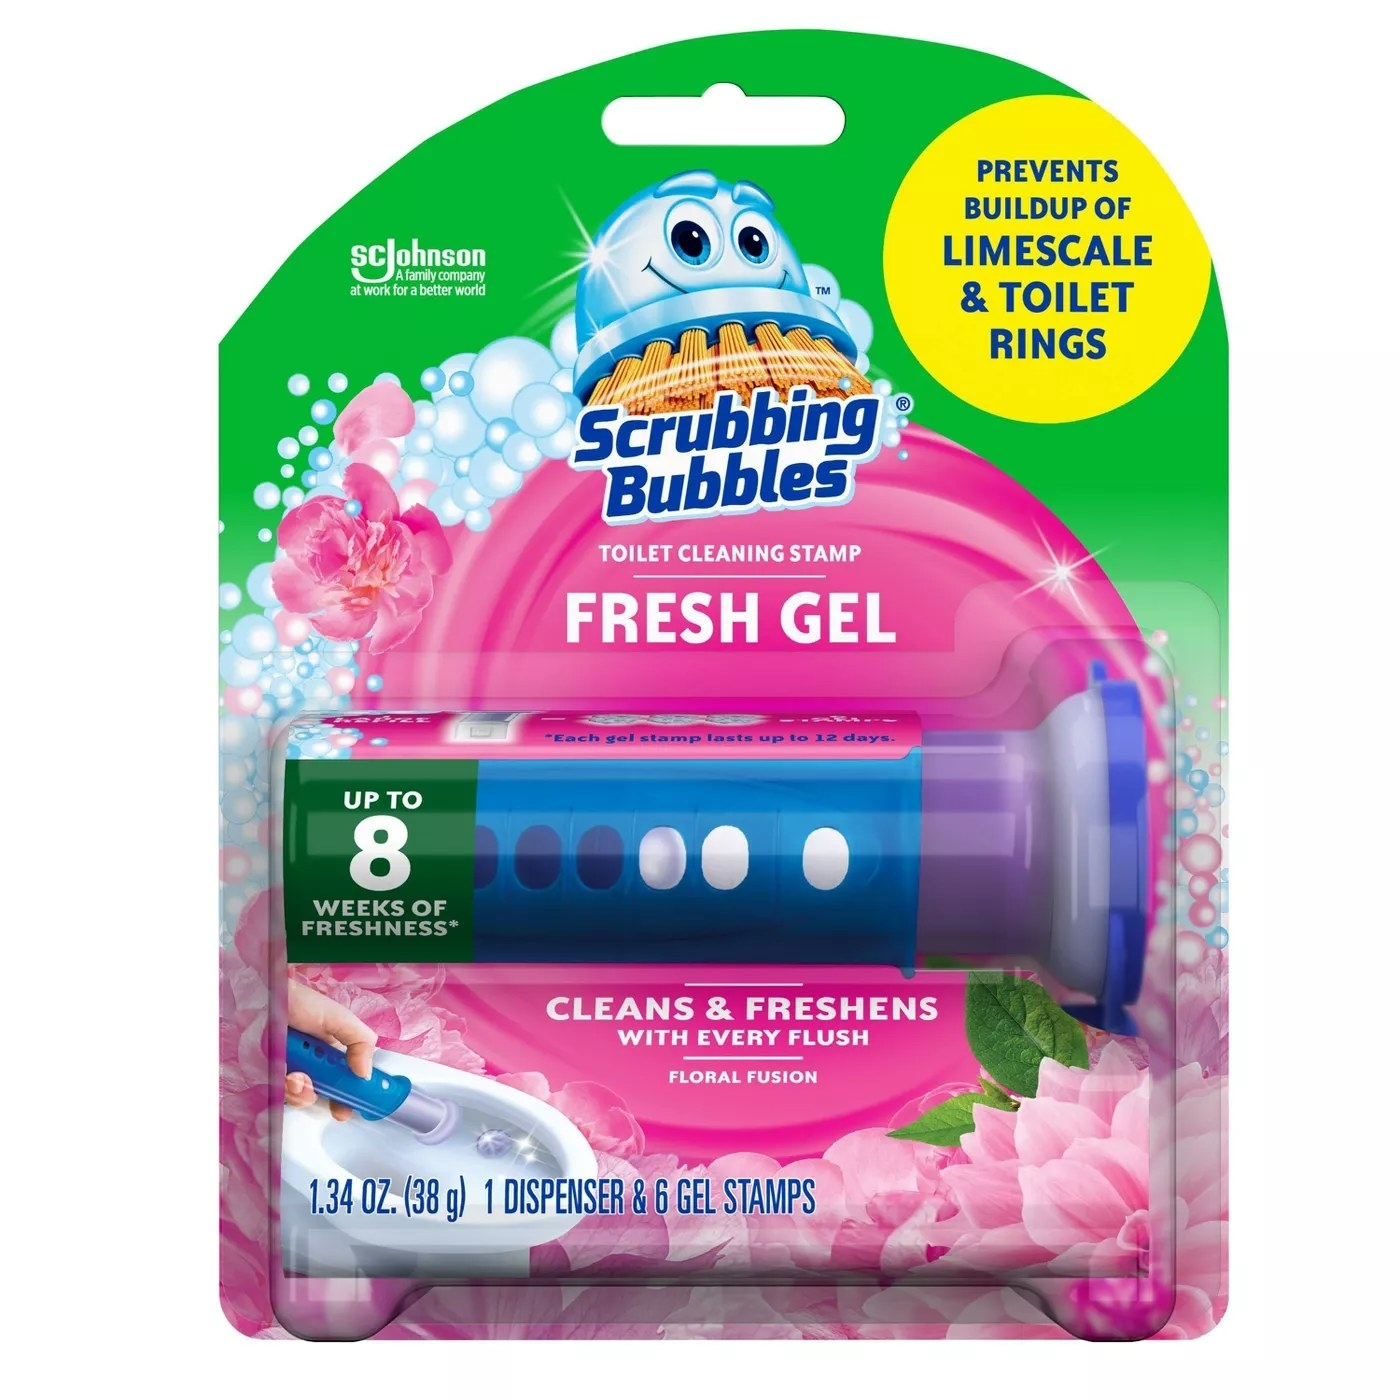 A dispenser of six Scrubbing Bubbles toilet-cleaning gel stamps that clean with every flush, deliver up to eight weeks of freshness, and prevents the buildup of limescale and toilet rings